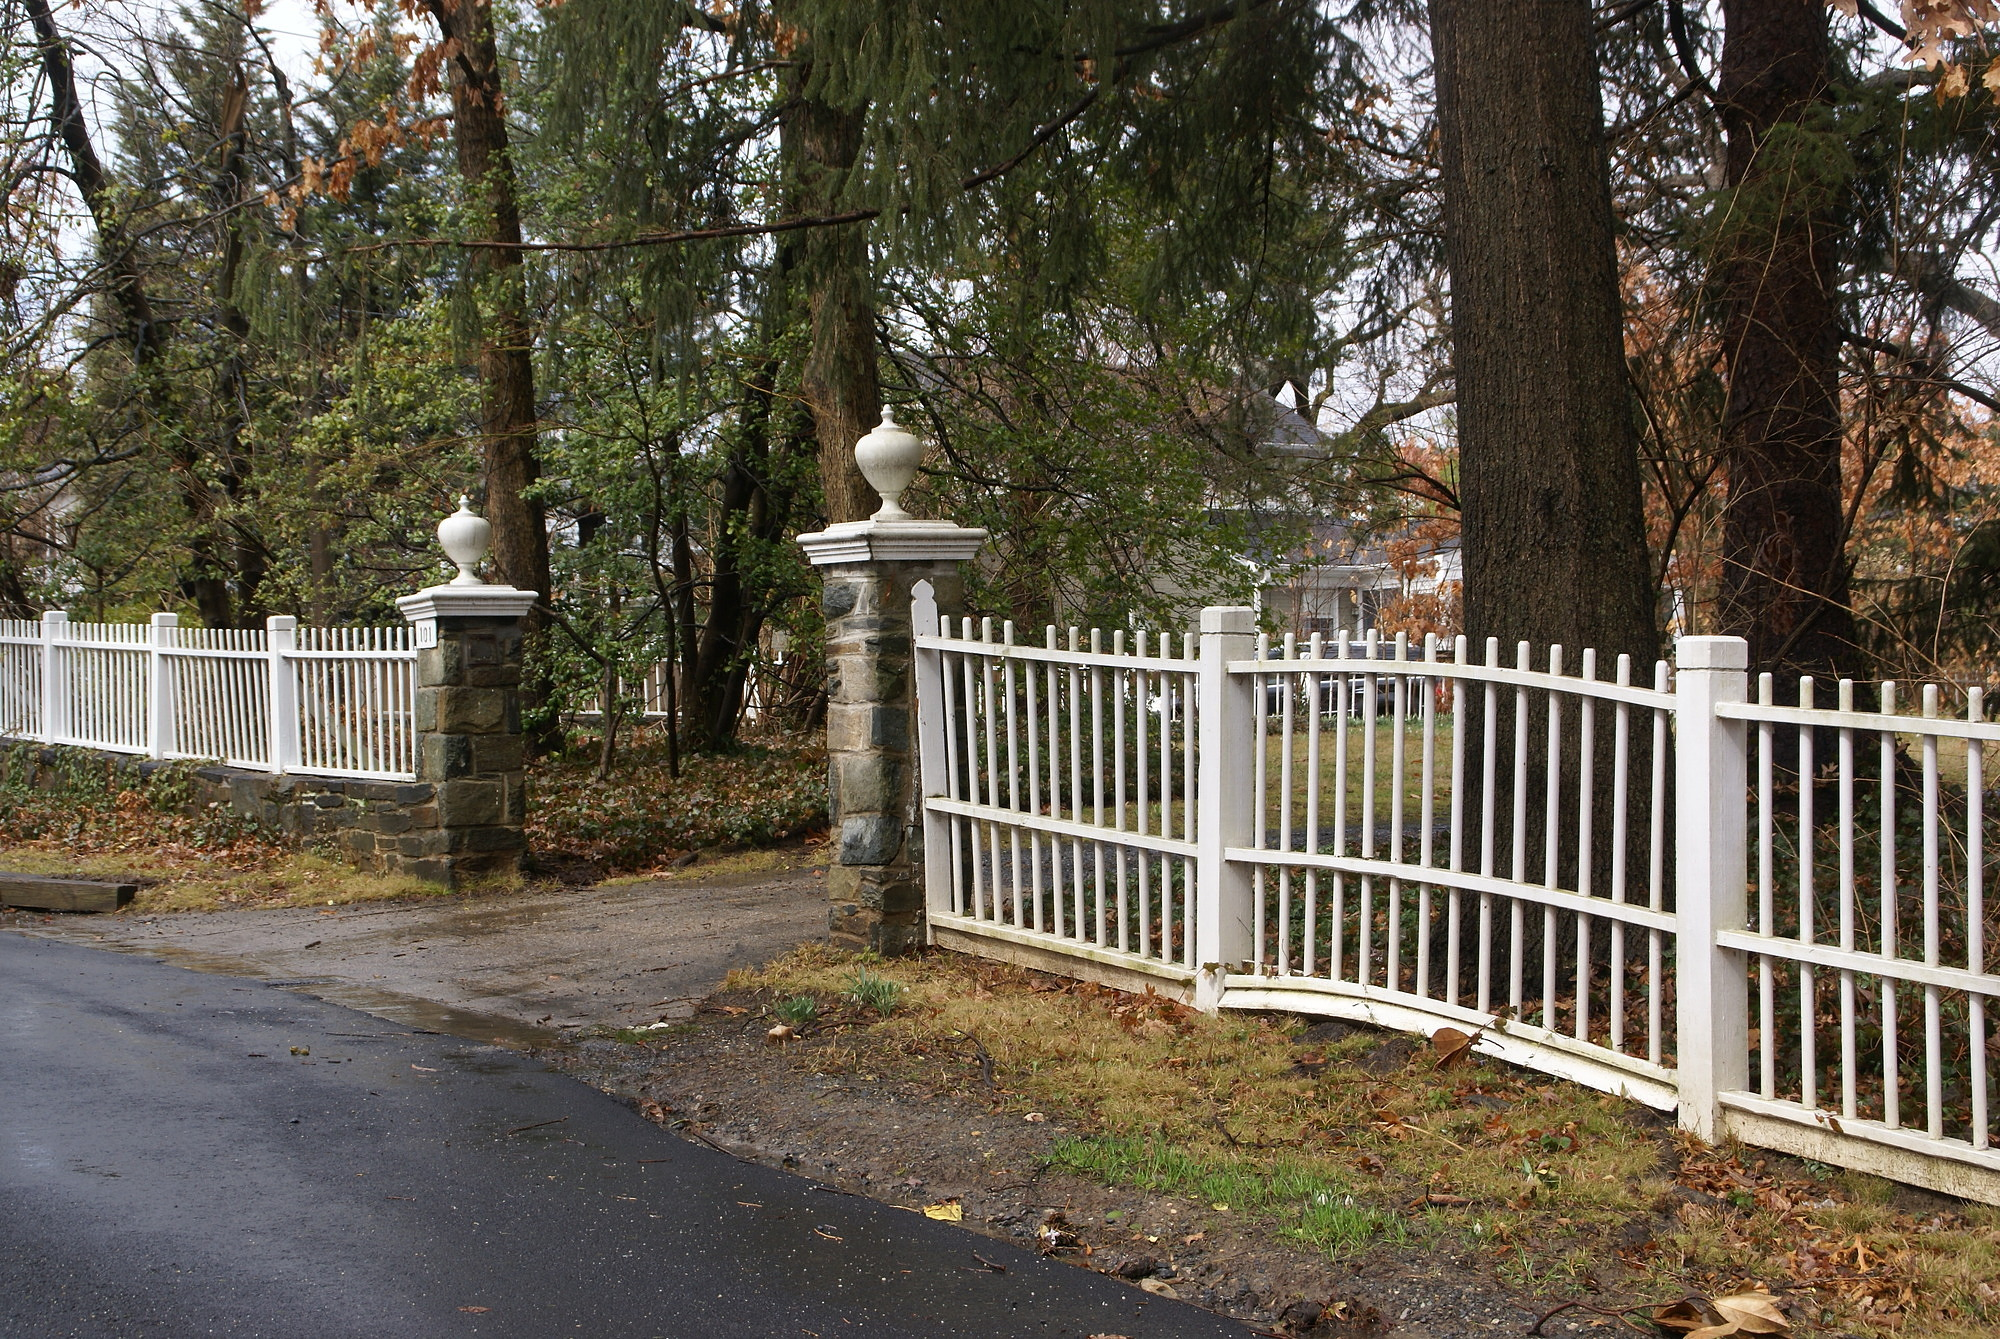 [Marsh Garden]: the gateposts and fences were designed by Rose Greely.